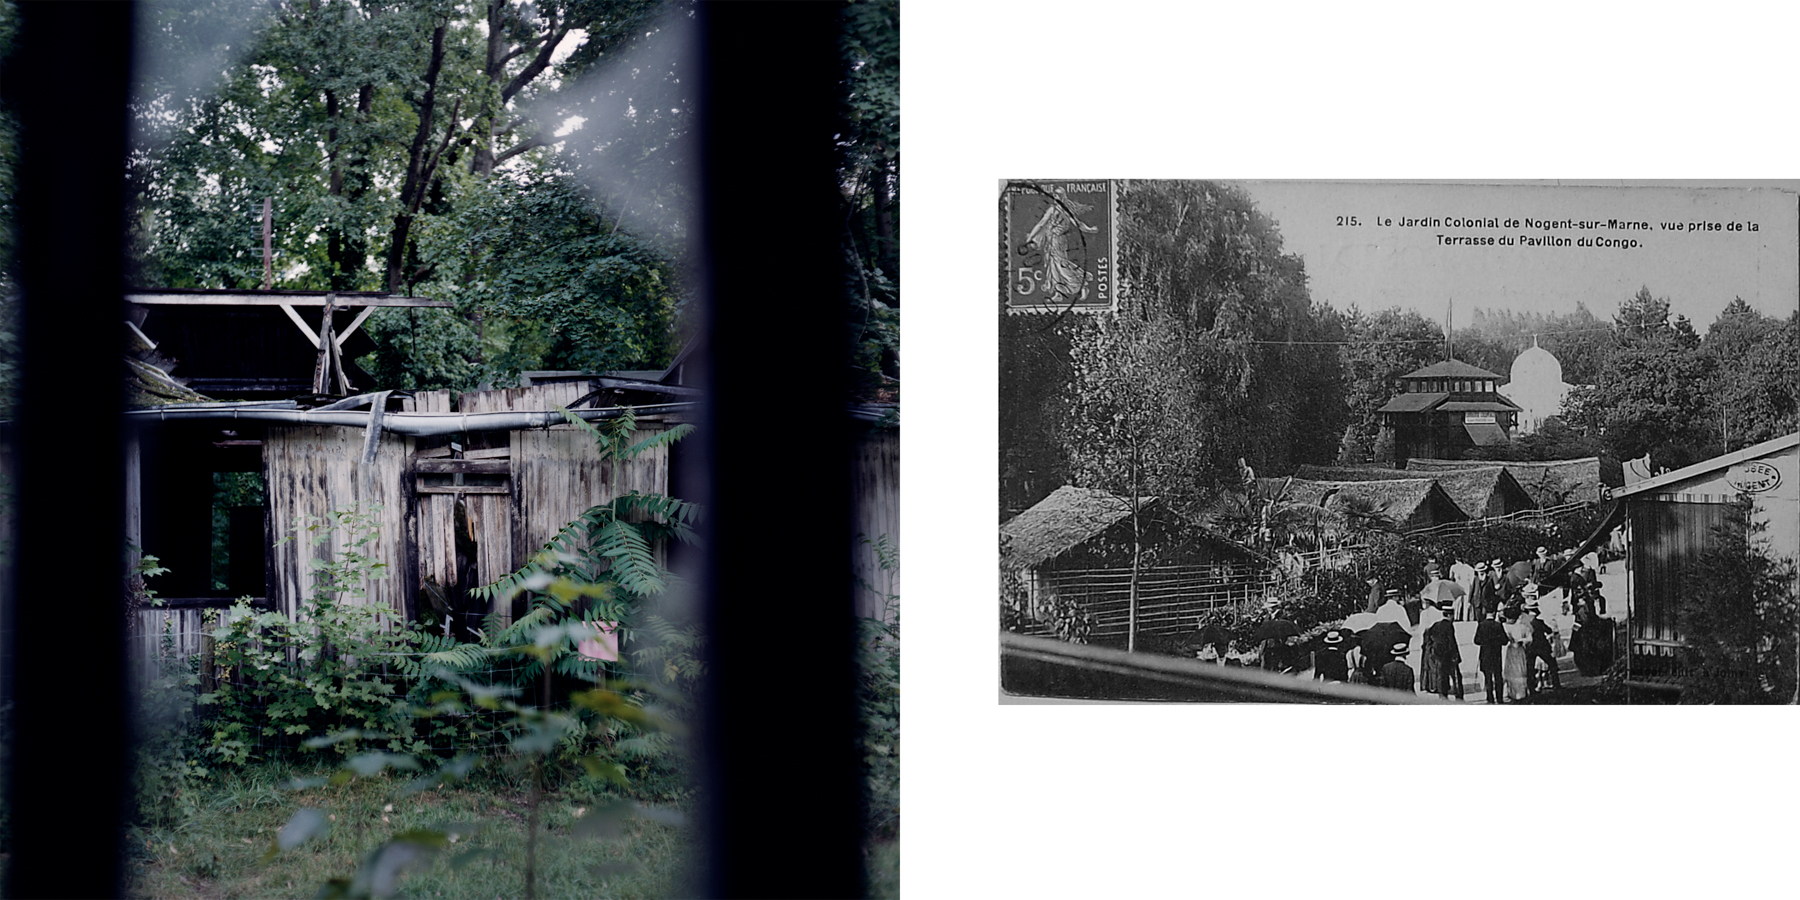 Left: Only the foundations of the Congo Pavilion remain after a 2004 fire. Right: A historical photo from the 1907 colonial exposition shows the living African village from the terrace of the Congo pavilion. During the exposition the pavilion displayed objects and products from French equatorial Africa. Nogent-sur-Marne, France